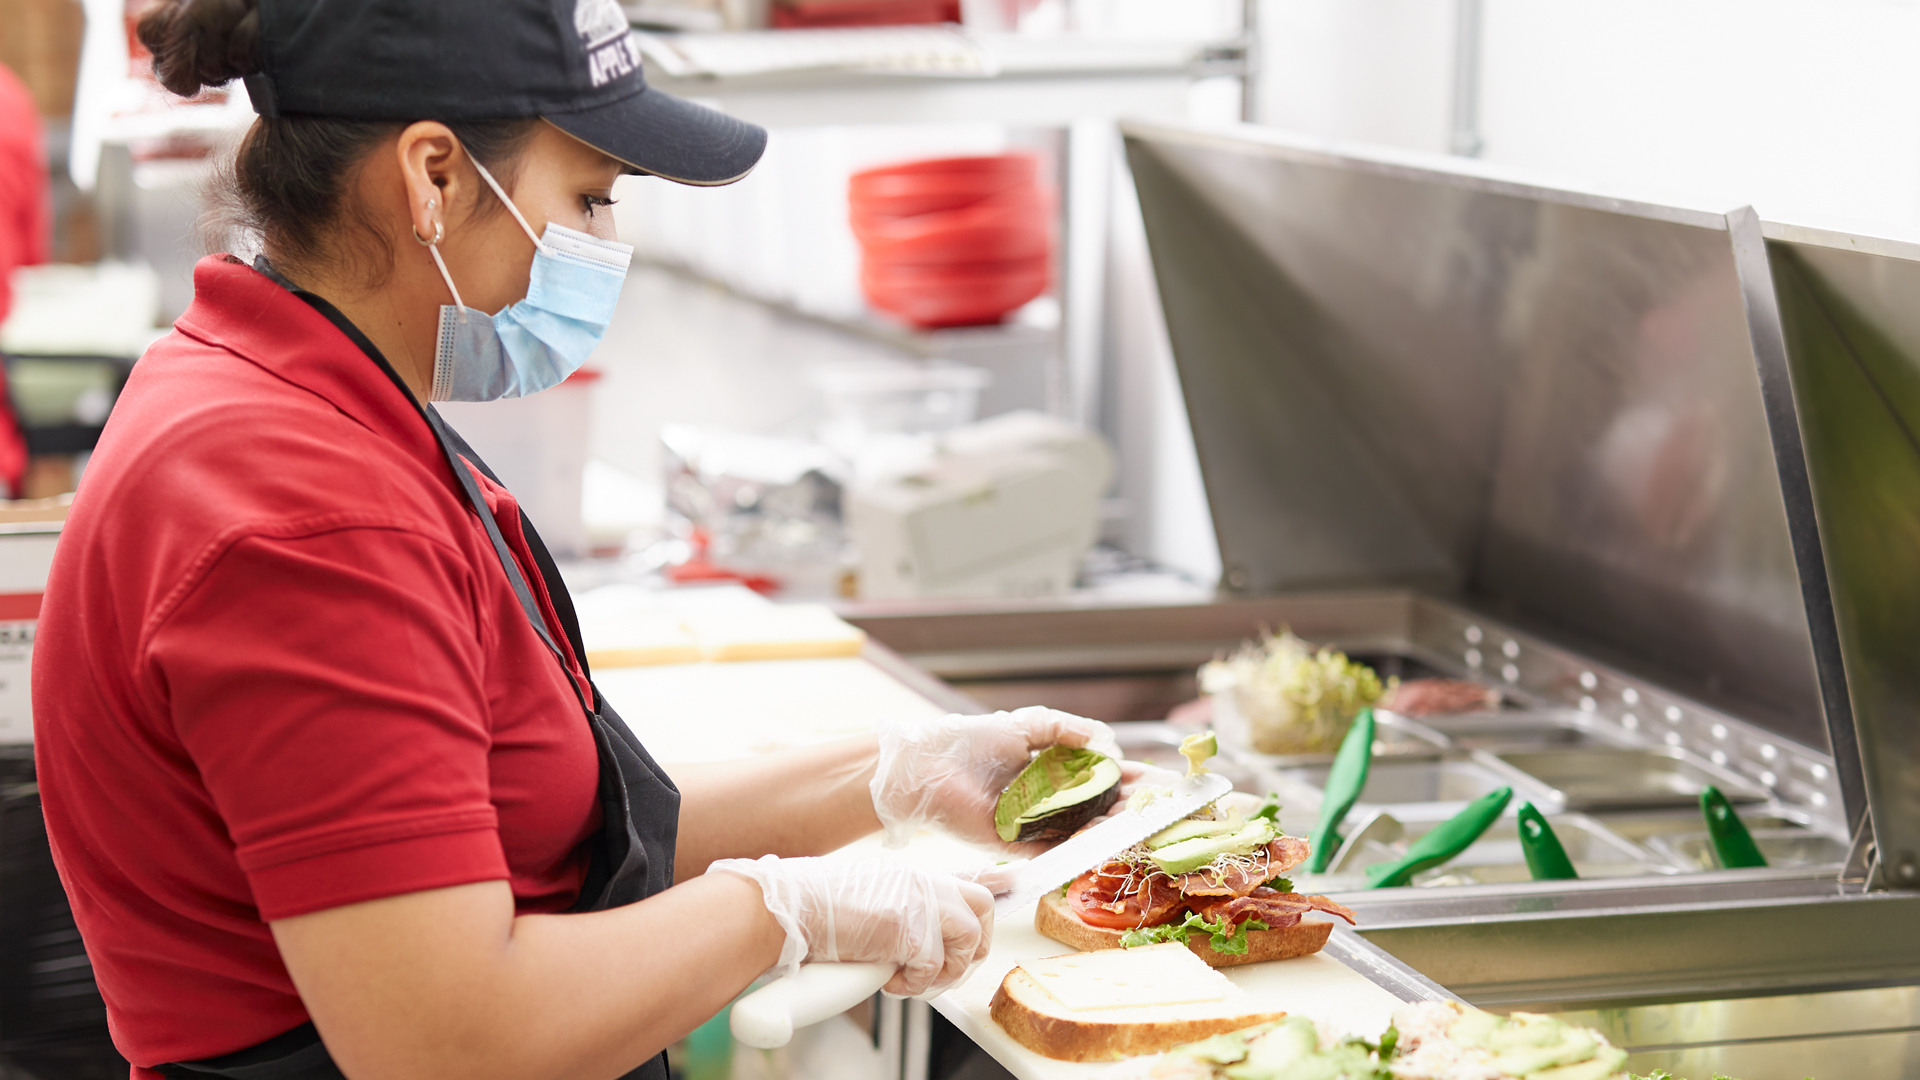 Apple Spice Catering Employee Makes Catered Sandwiches